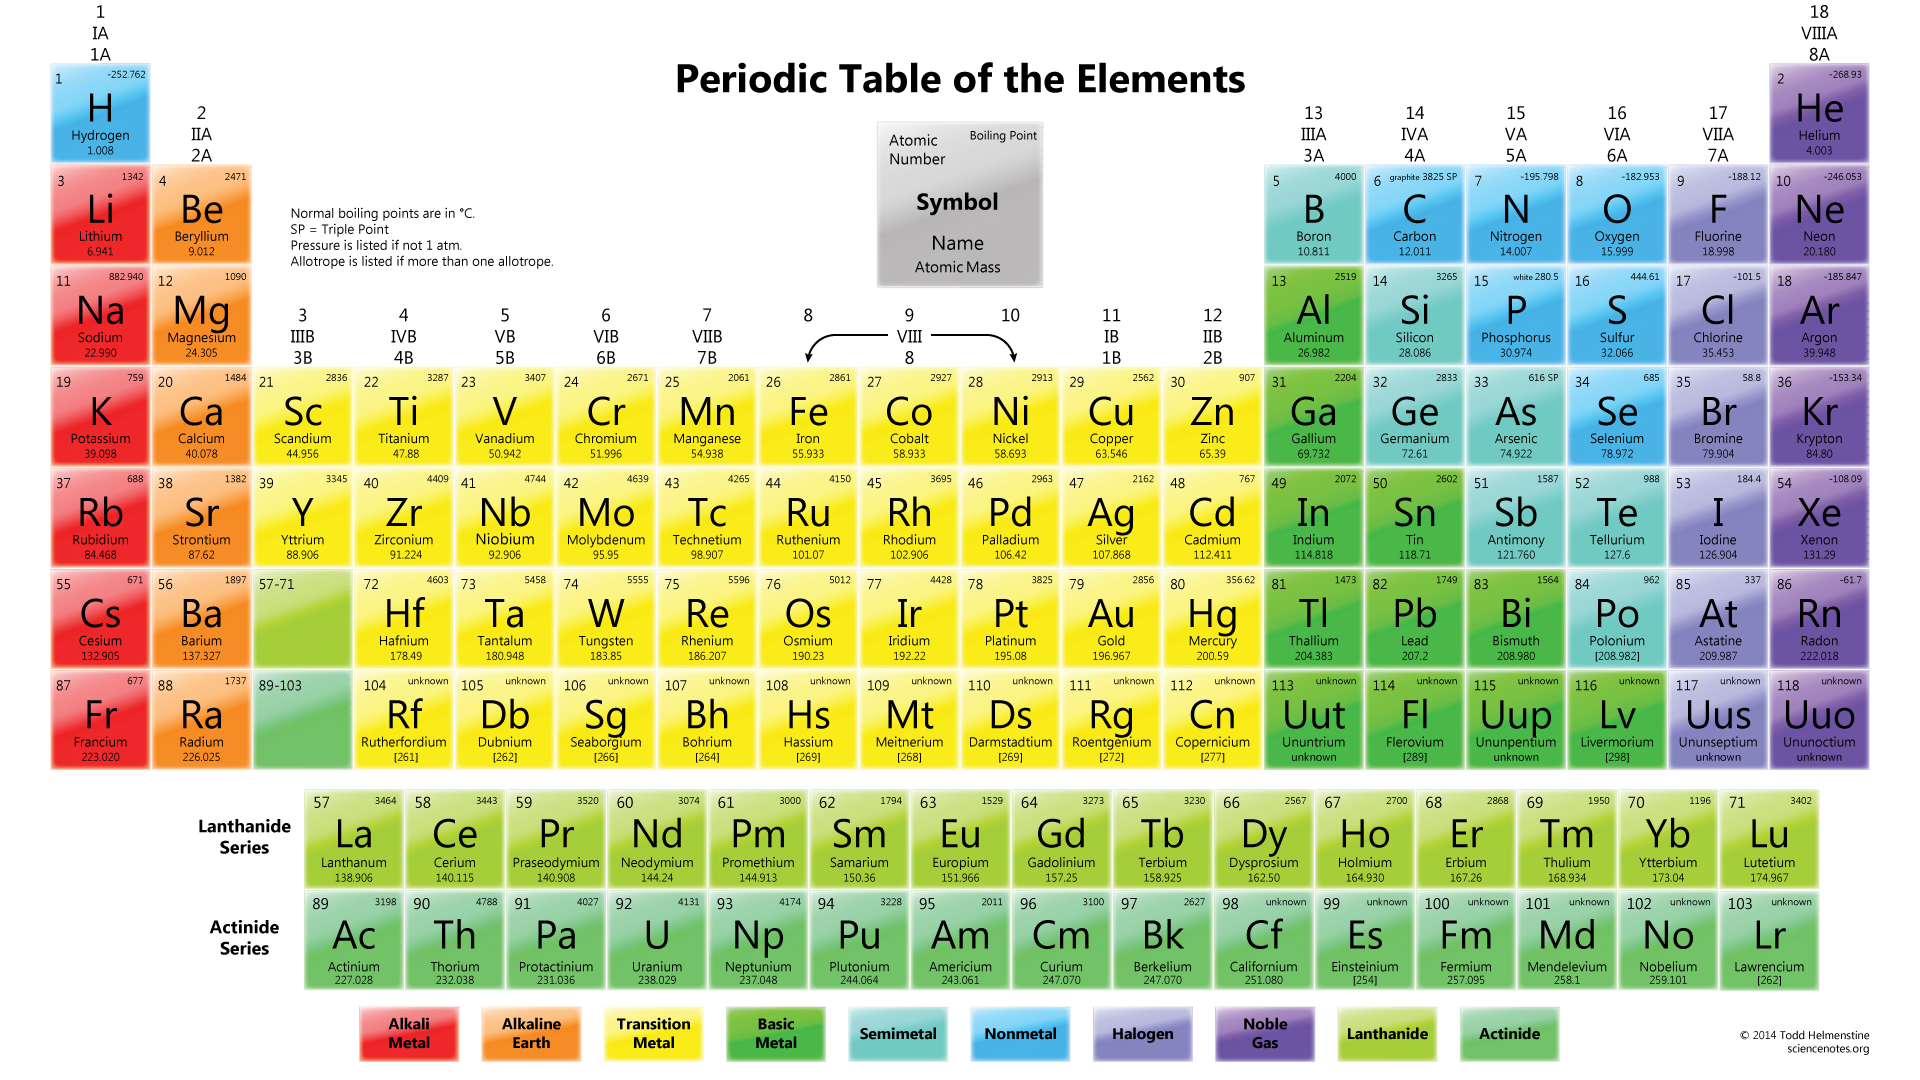 Ben hedda chem110 fa16 blog periodictableboilingpoint periodic table gamestrikefo Image collections